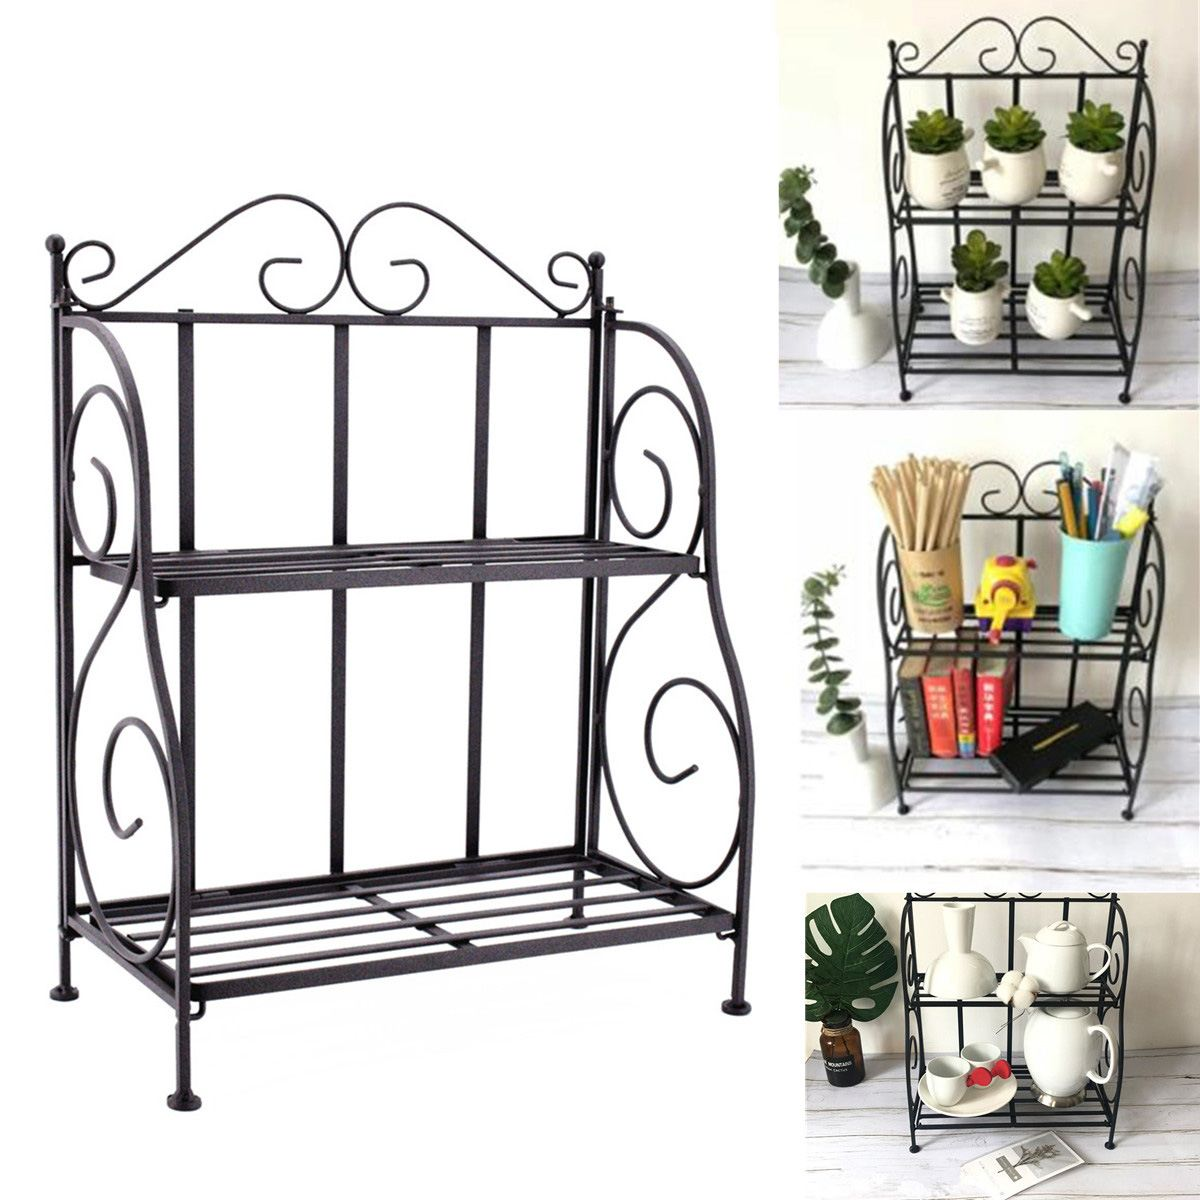 2-layers Iron Plant Stand Shelf Rack Simple Indoor Coffee Bar Garden Balcony Flower Pot Shelf Multi-use Shelf Home Decoration